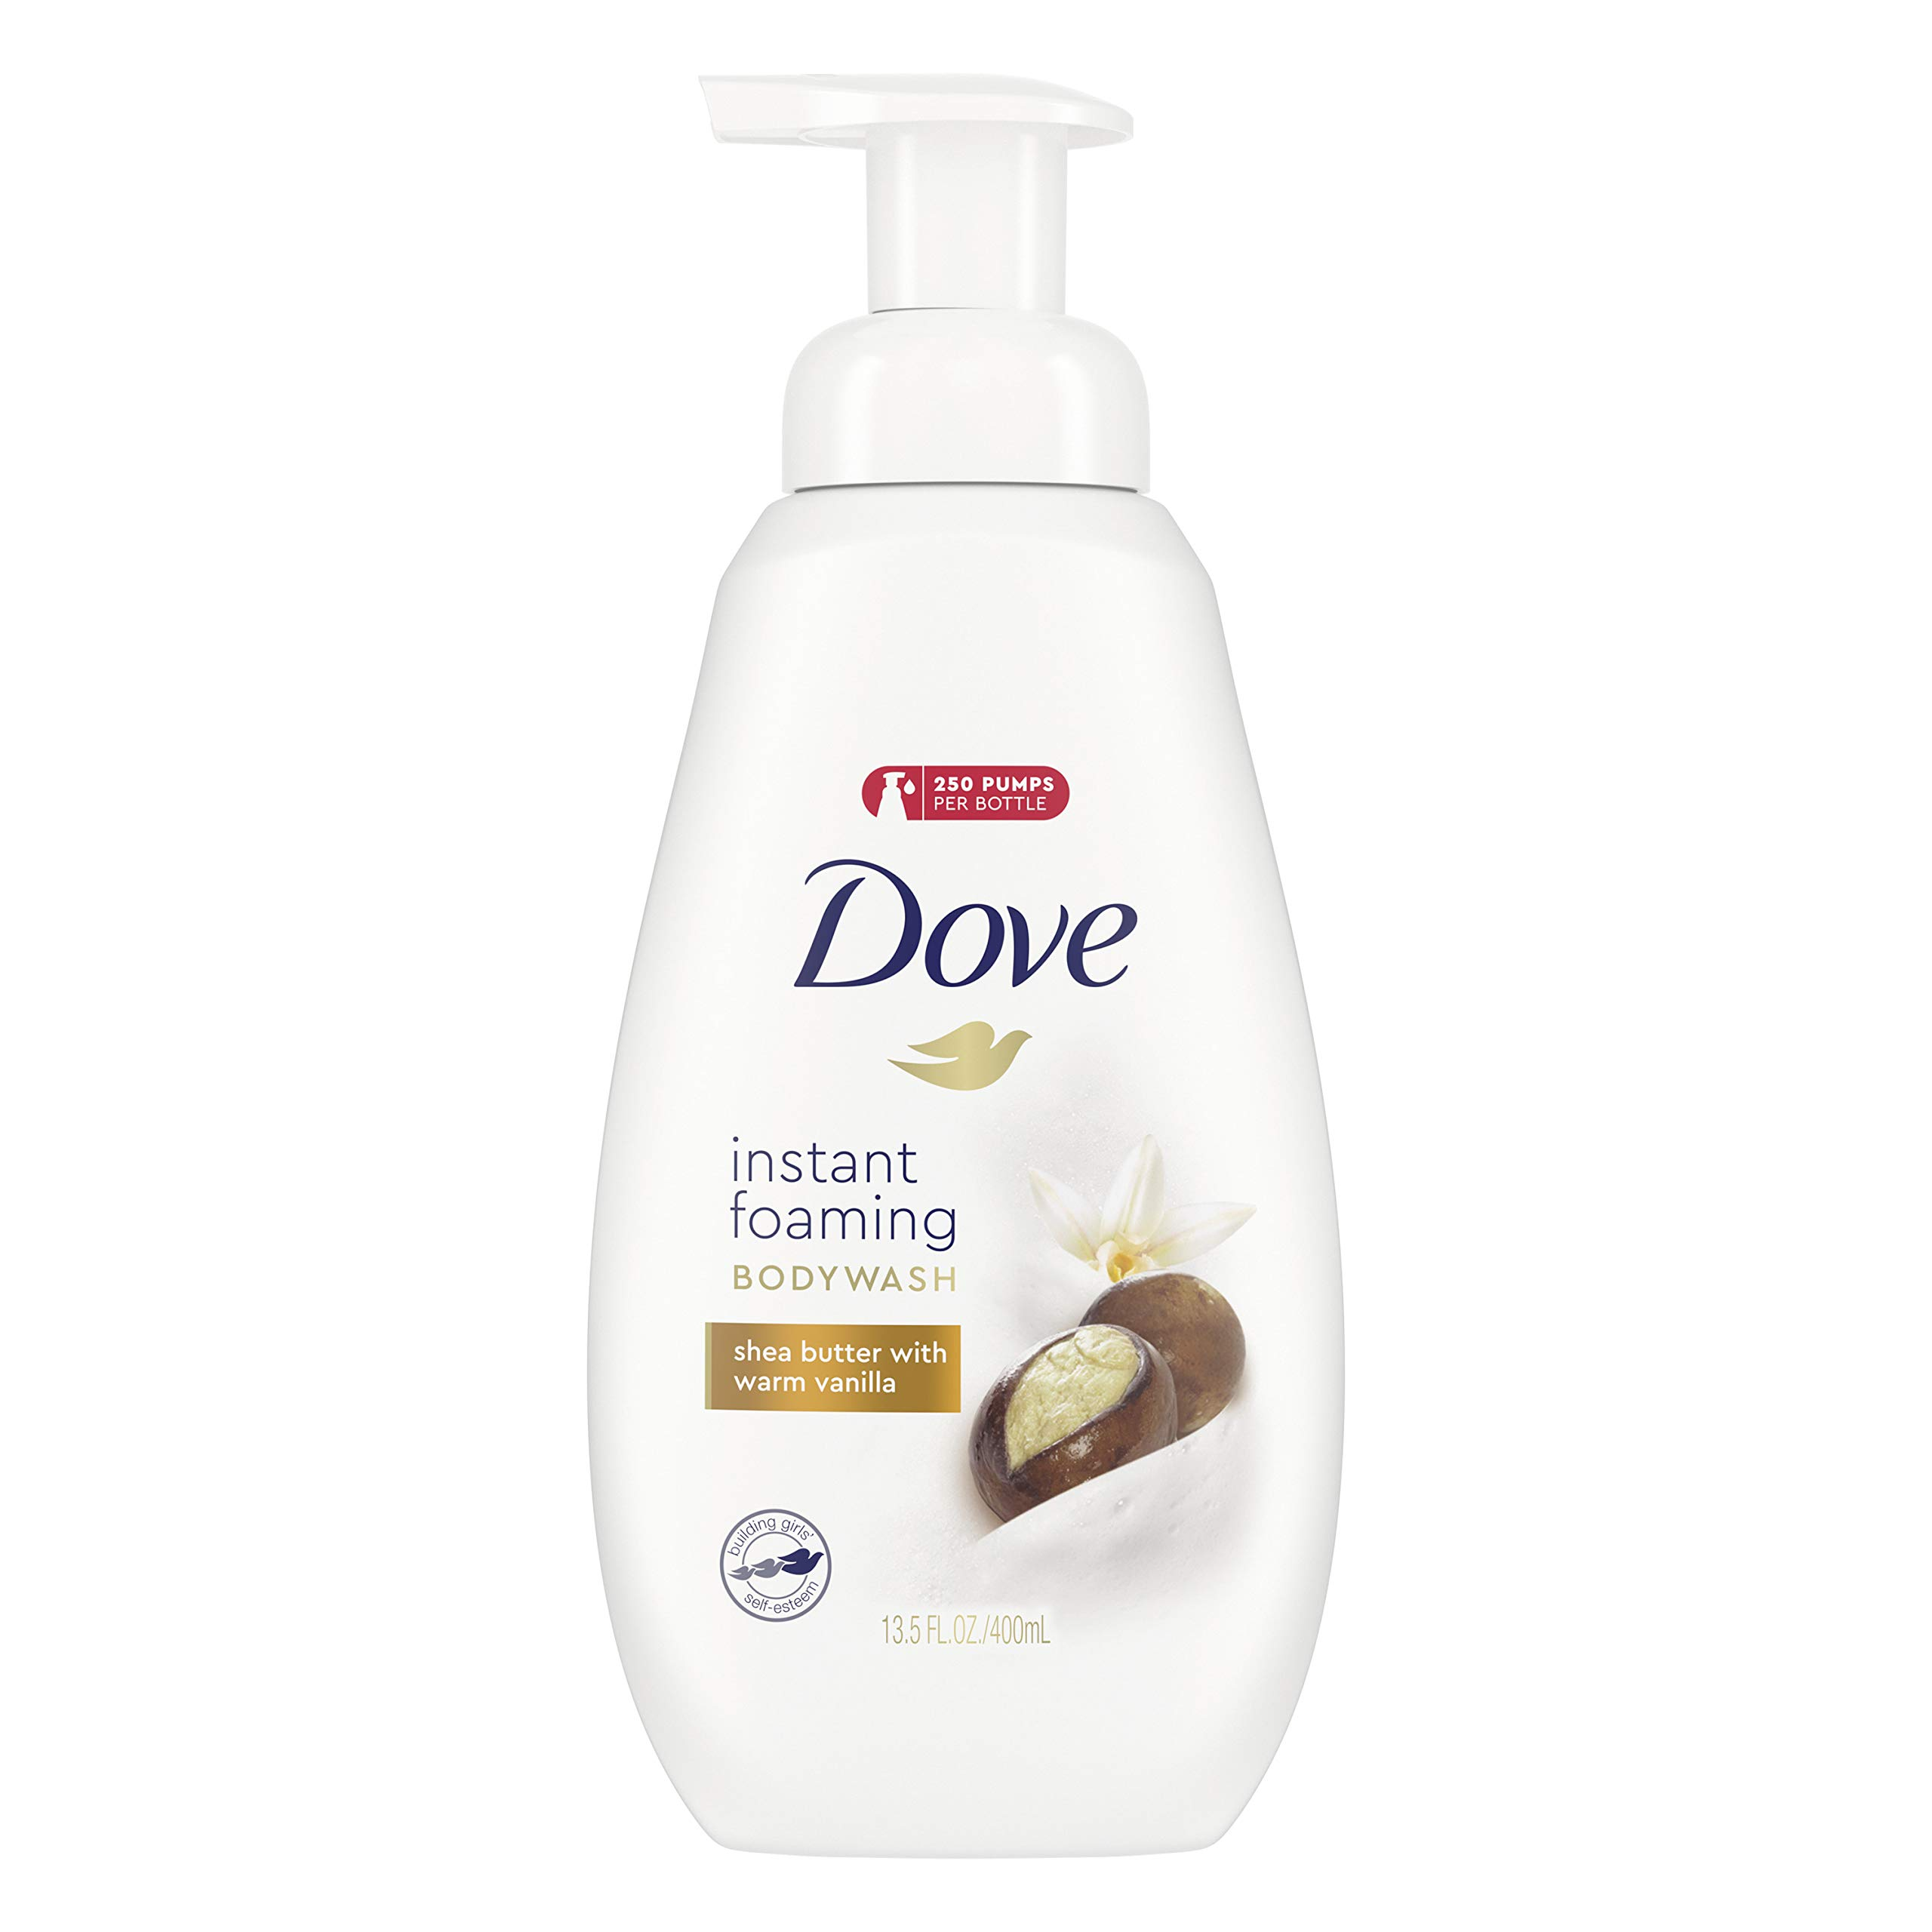 Dove Instant Foaming Body Wash with NutriumMoisture Technology Shea Butter with Warm Vanilla Effectively Washes Away Bacteria While Nourishing Your Skin 13.5 oz